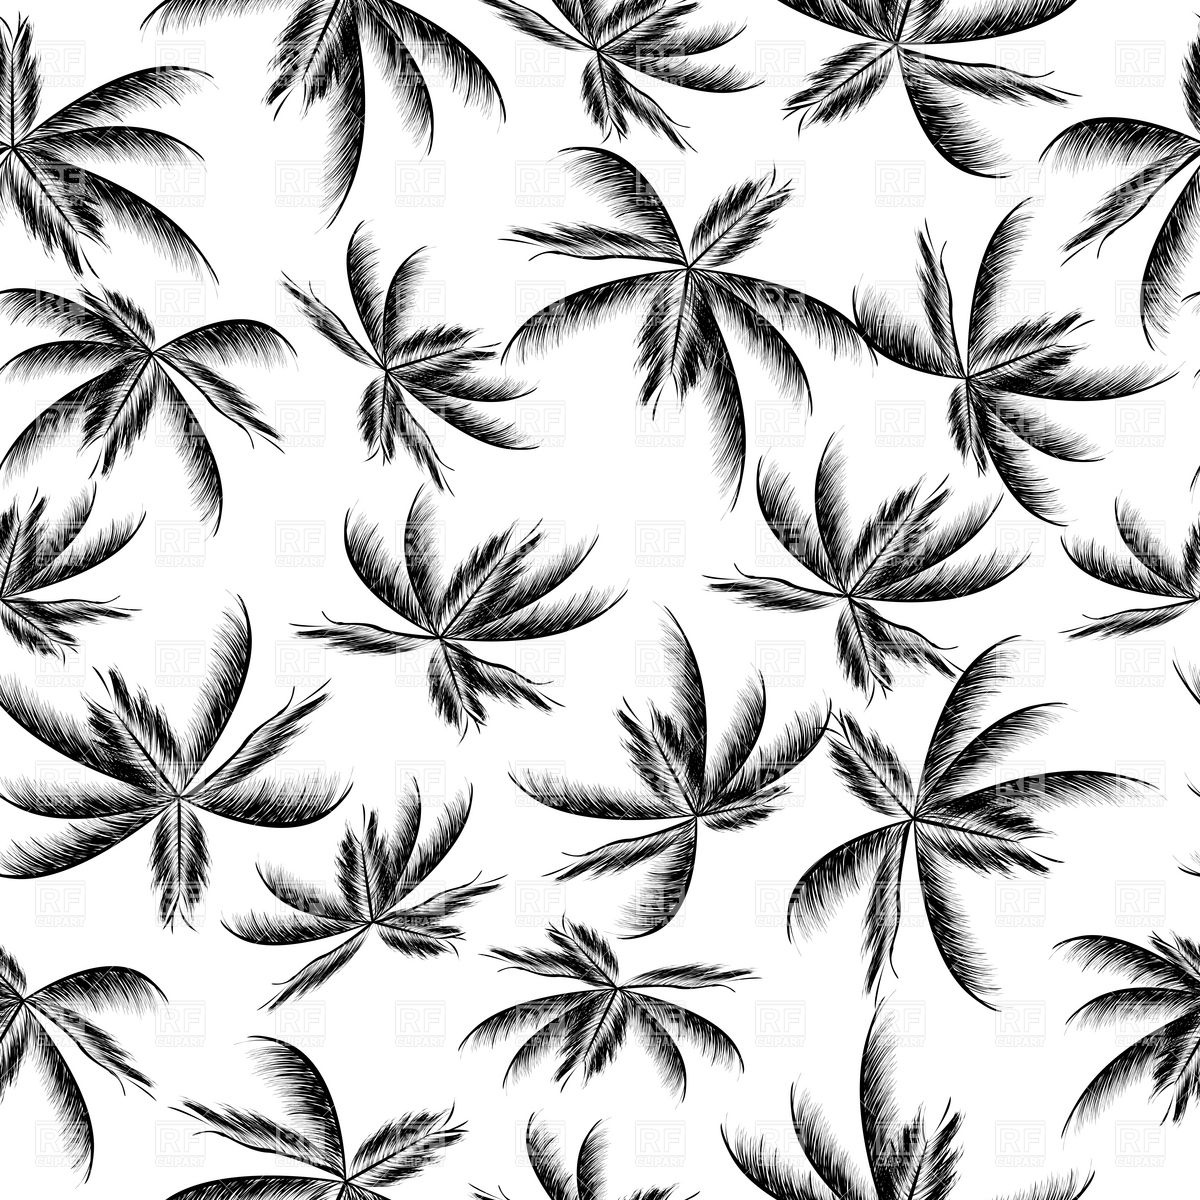 15 Palm Tree Free Vector Patterns Images